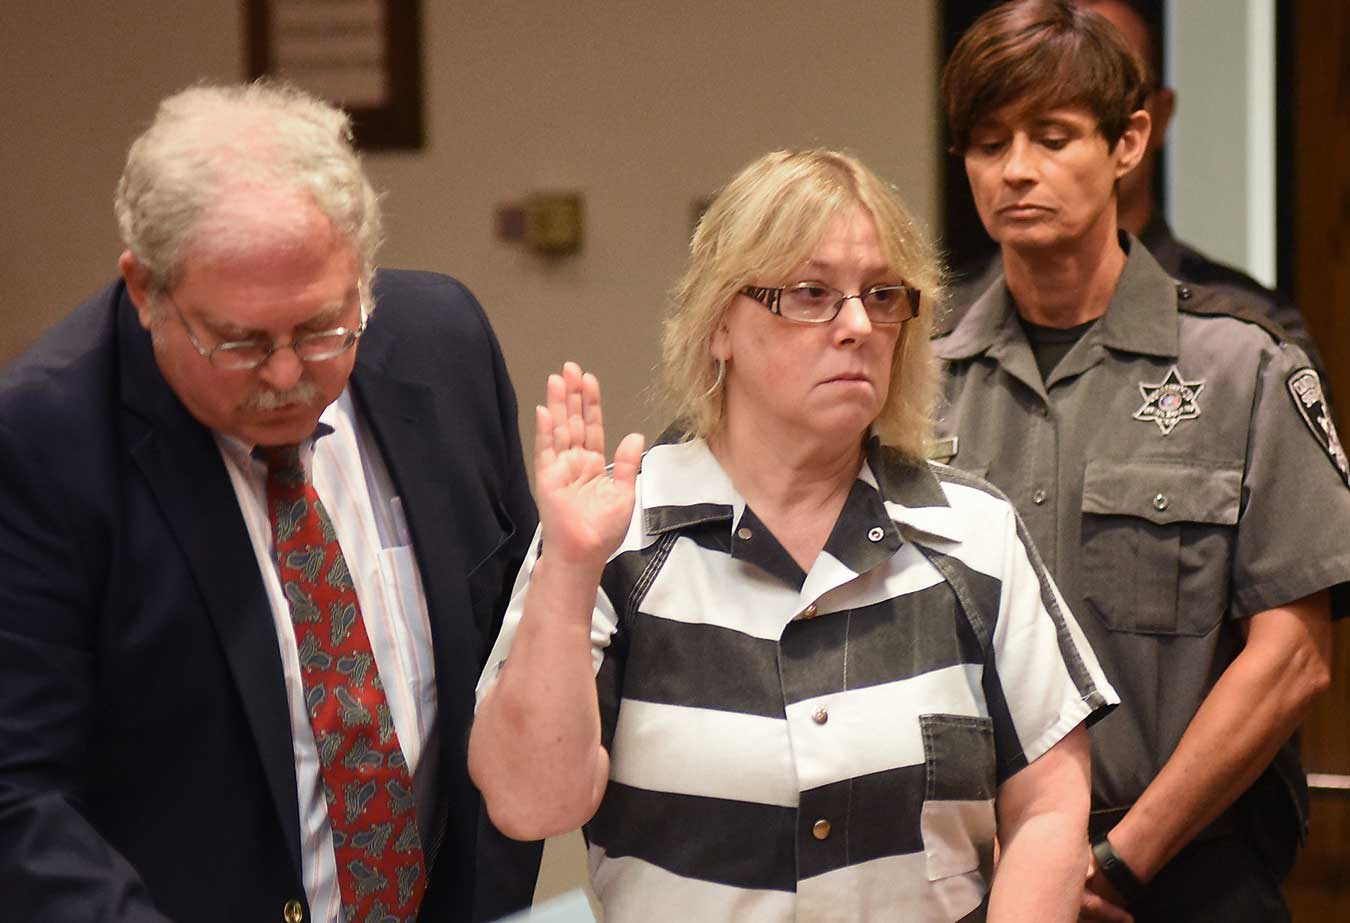 Joyce Mitchell raises her hand during a court appearance in Plattsburgh, N.Y.,  July 28, 2015